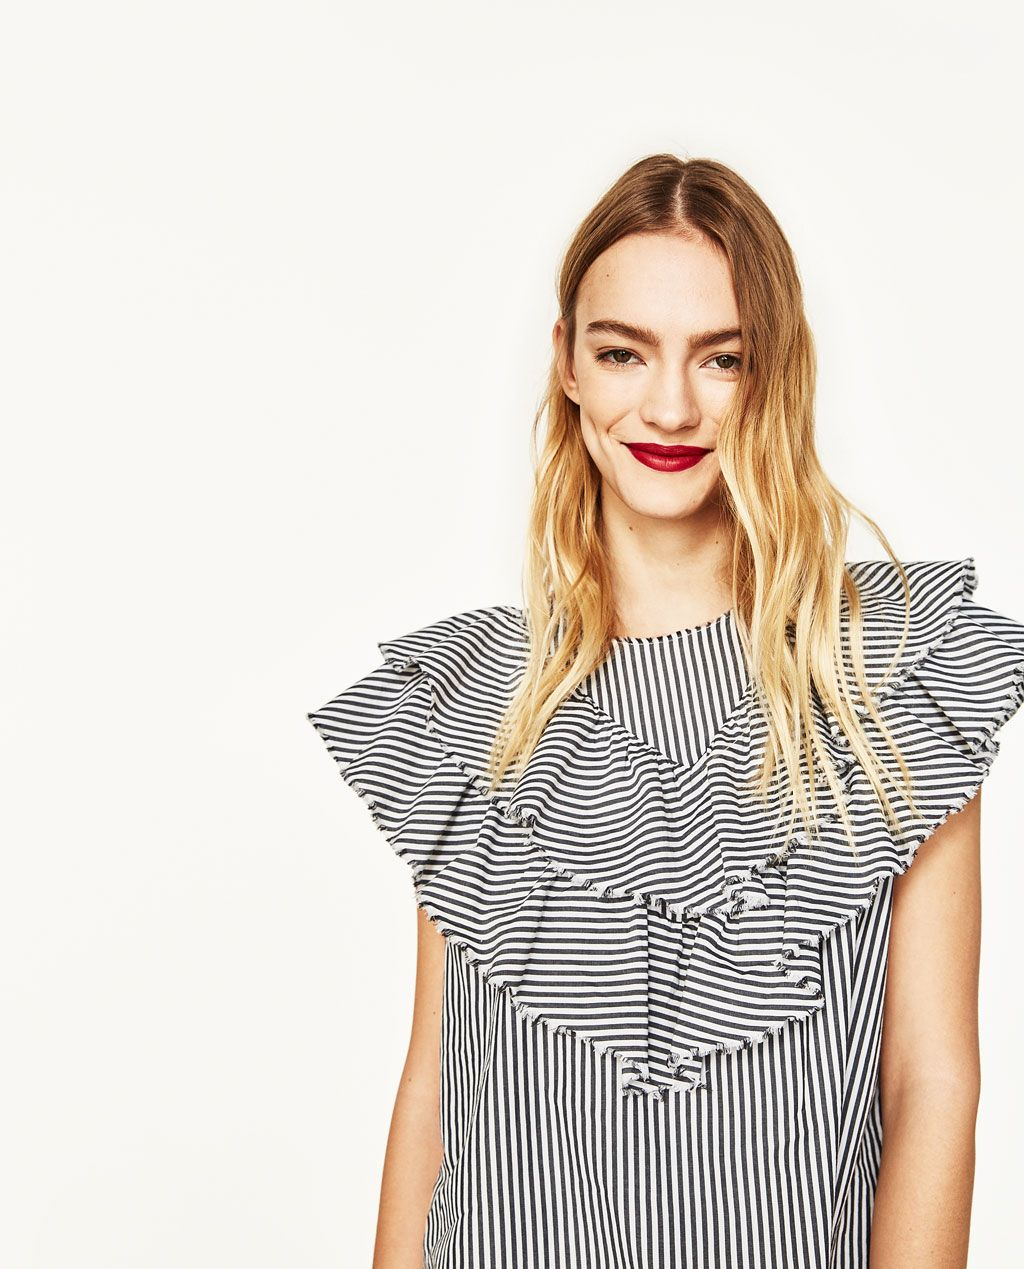 37a6855ed95b STRIPED POPLIN BLOUSE WITH FRILL-Blouses-TOPS-WOMAN